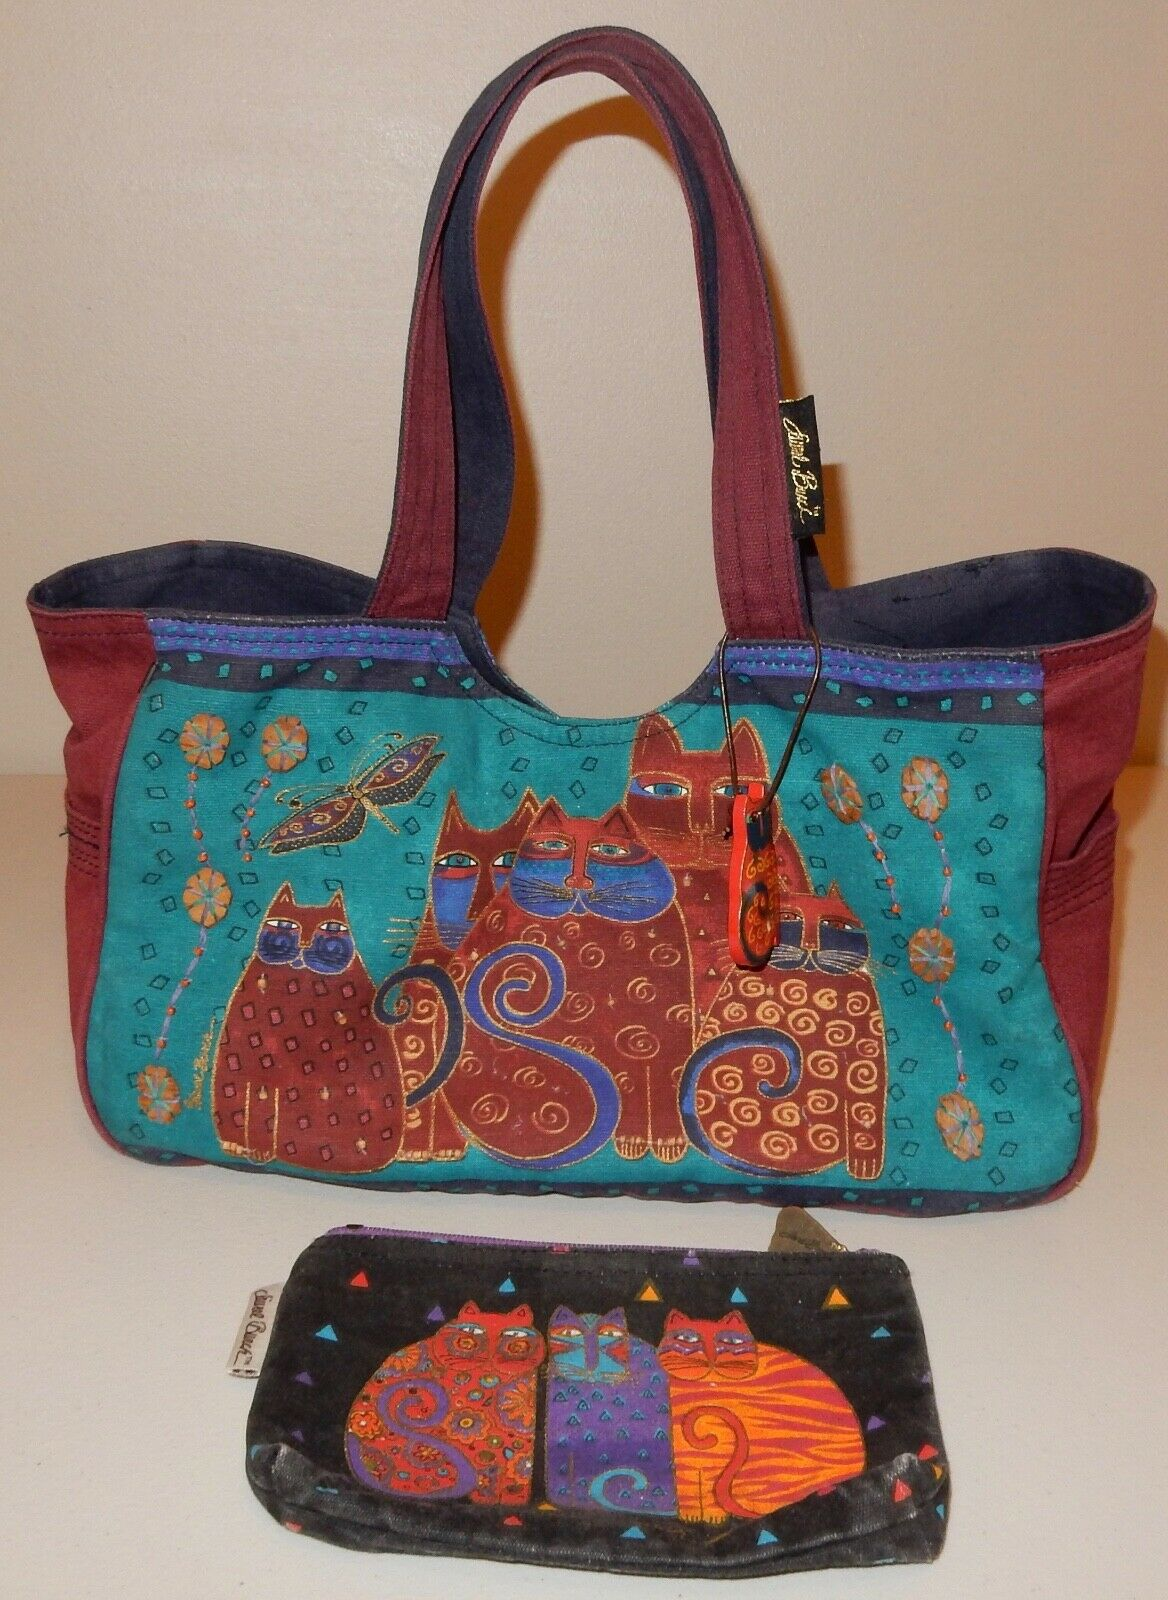 Laurel Burch Cat Tote Bag & Pouch Used - image 1